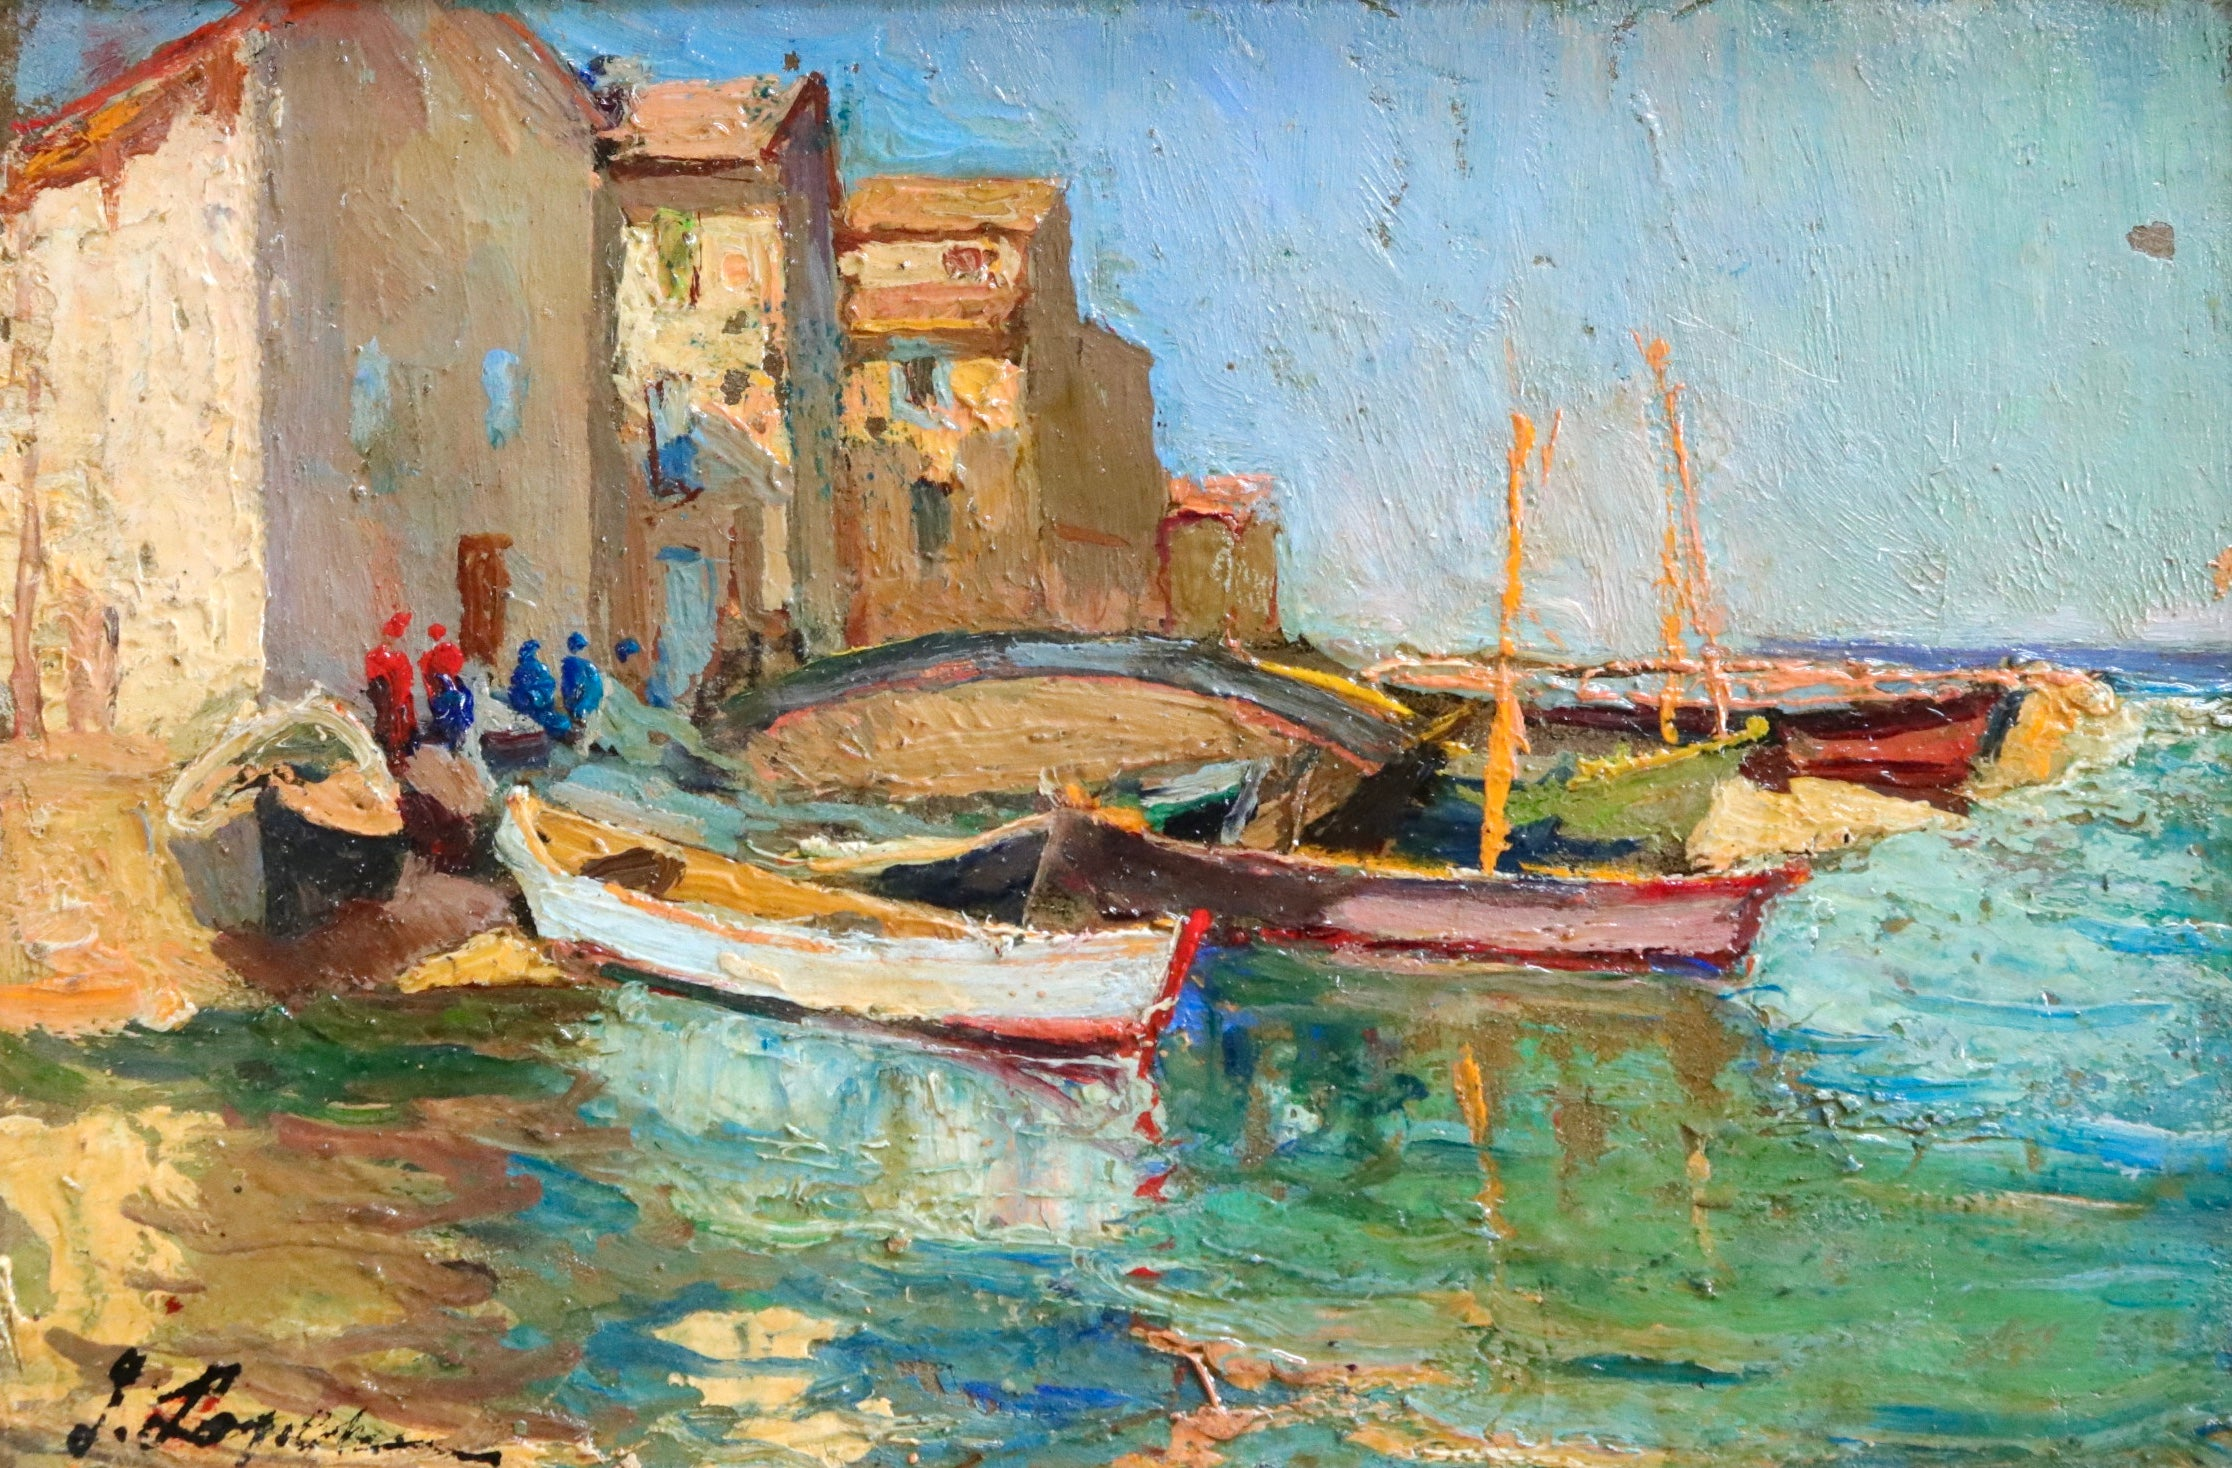 Moored Boats - Martigues - 20th Century Oil, Canal Landscape by Georges Lapchine